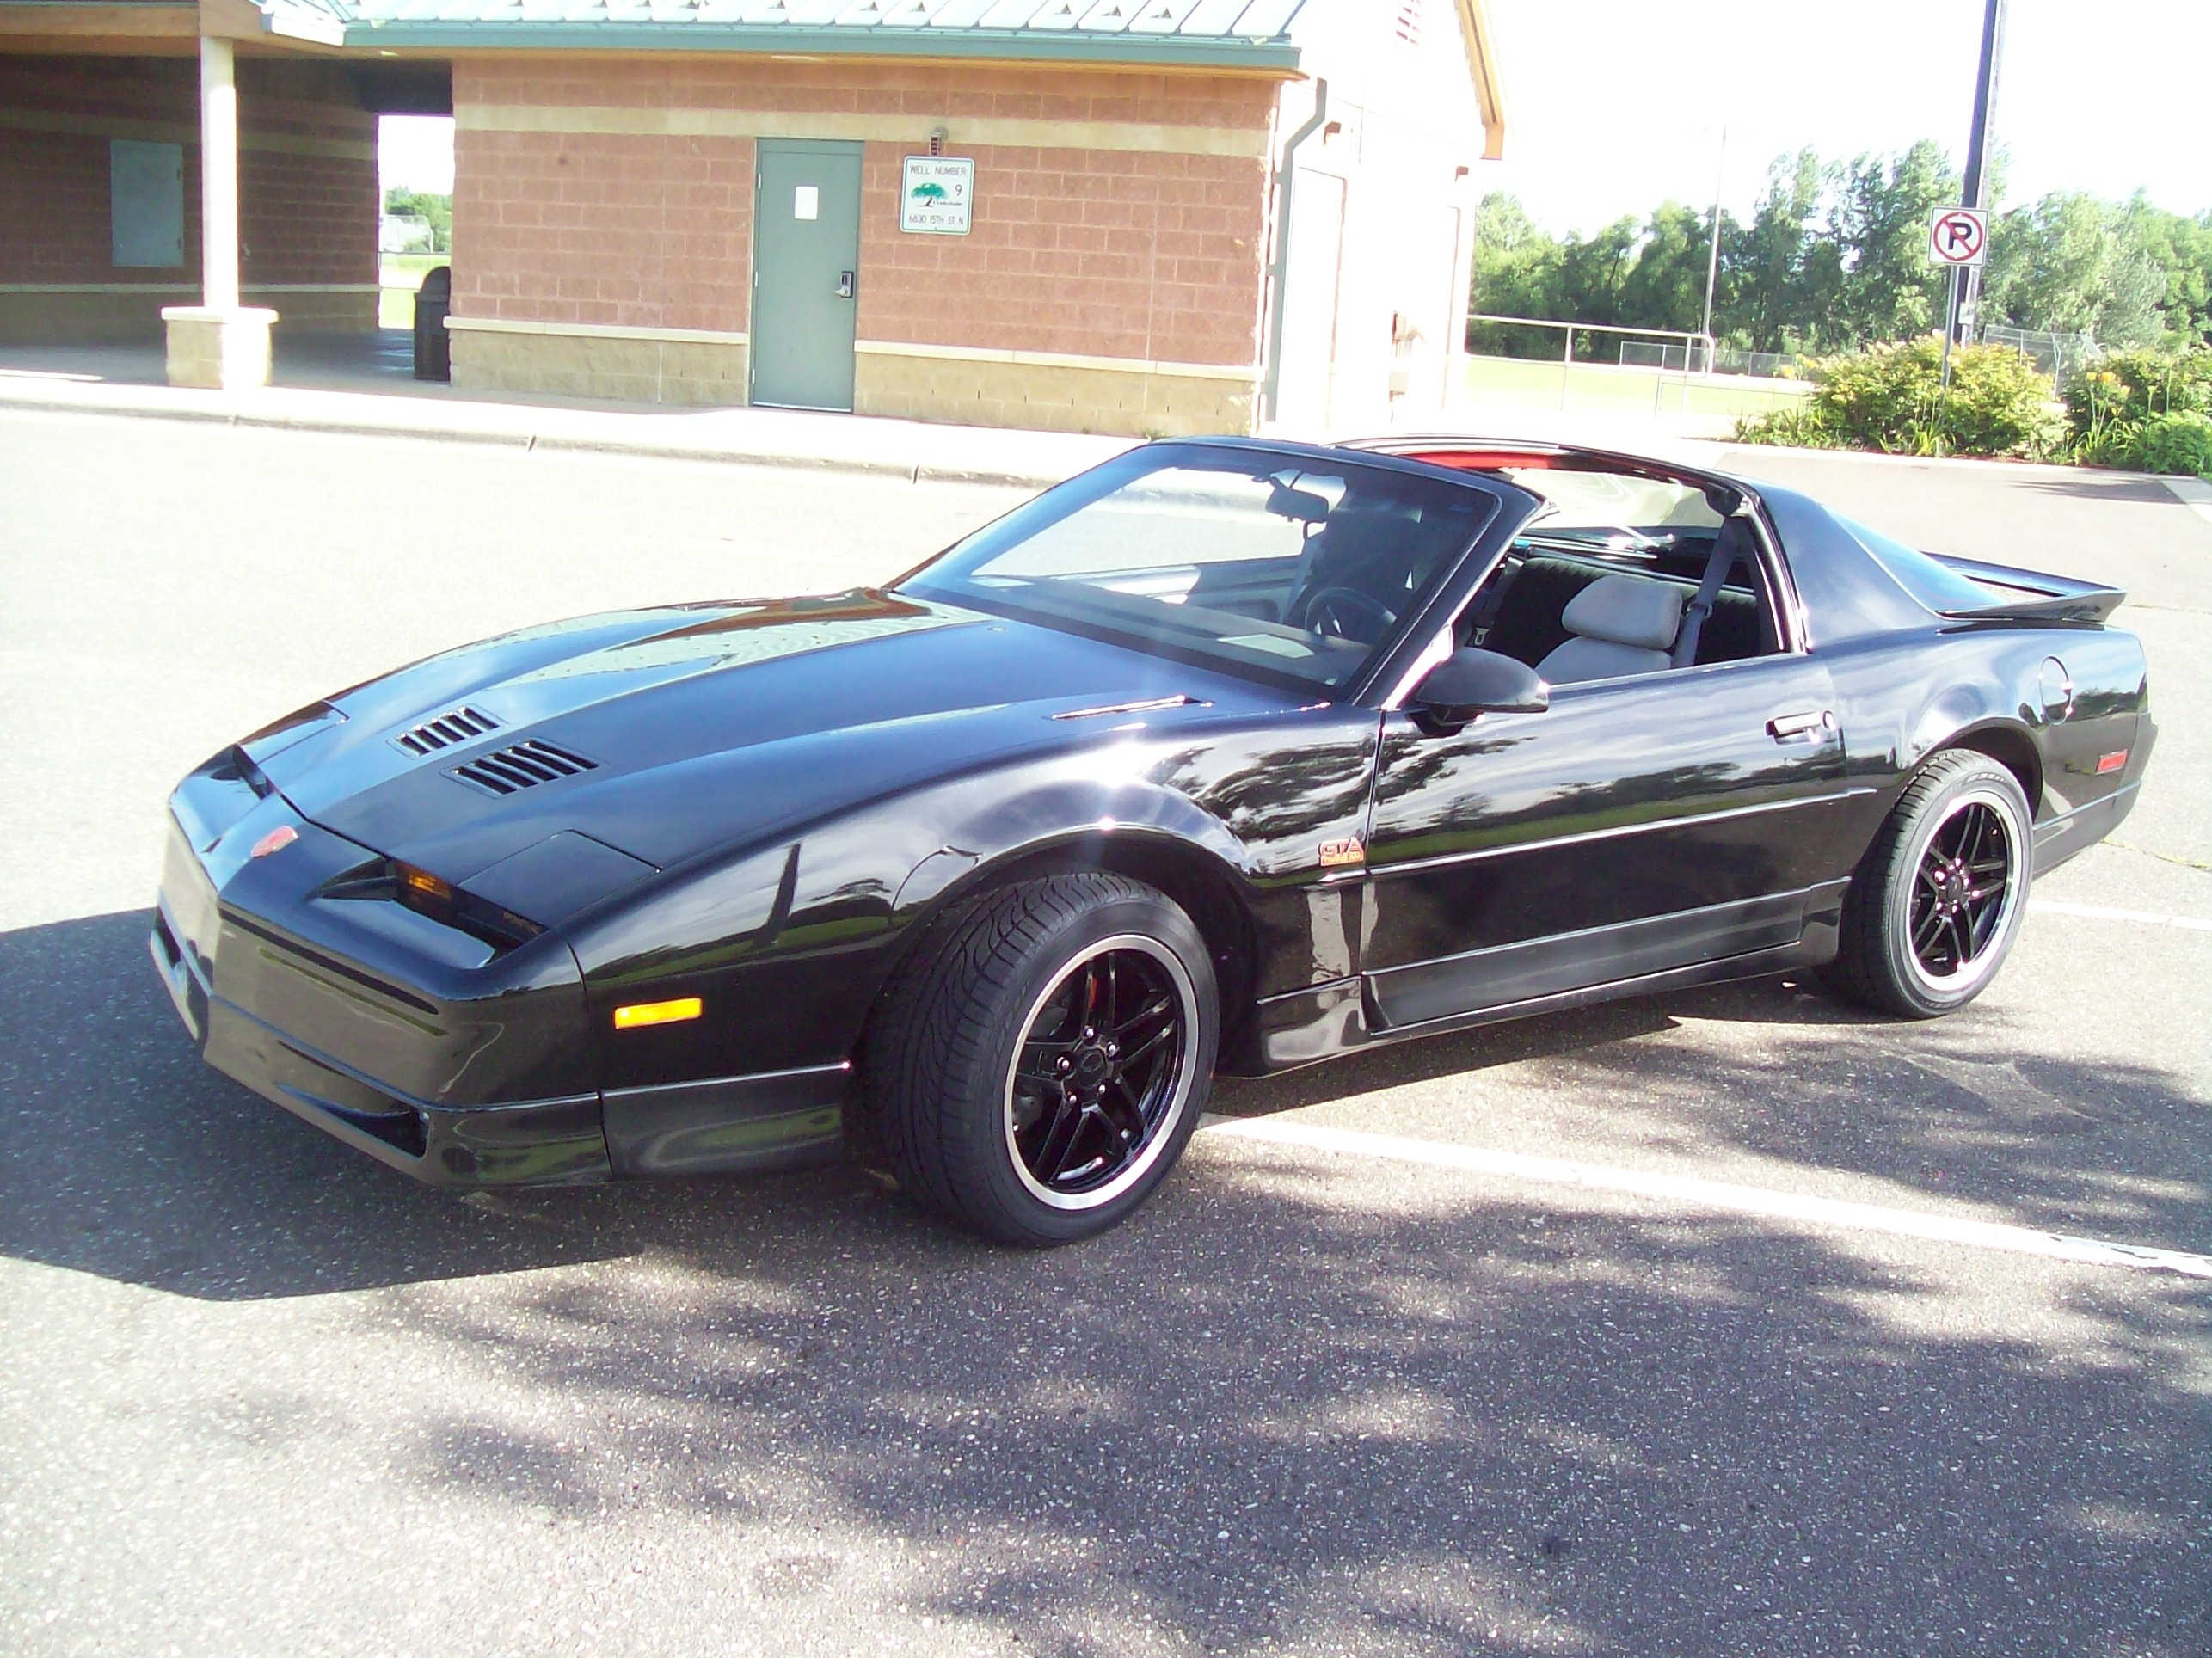 transmetal 39 s 1989 pontiac trans am in twin cities mn. Black Bedroom Furniture Sets. Home Design Ideas